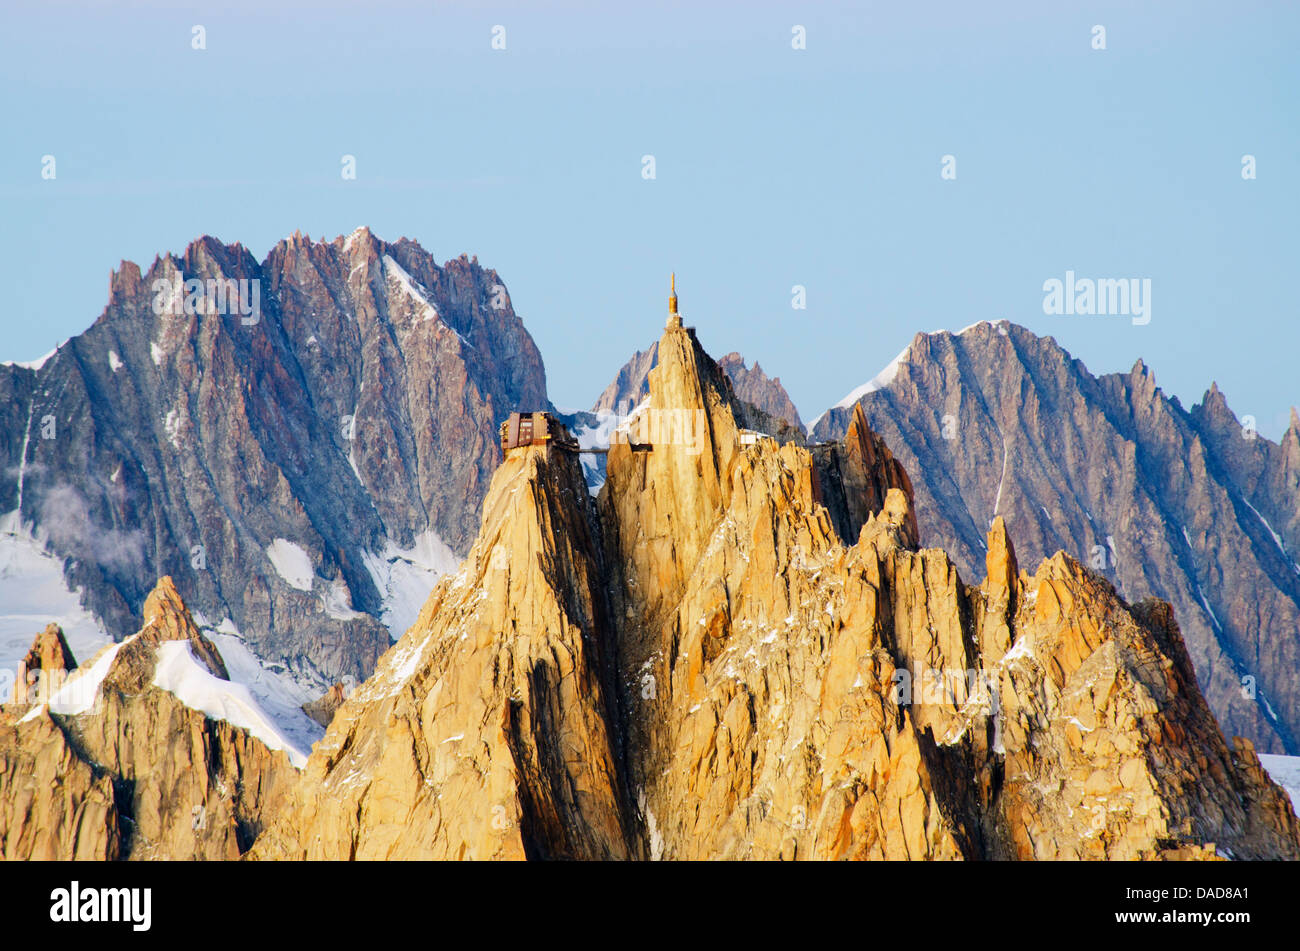 Aiguille du Midi cable car station, Haute-Savoie, French Alps, France, Europe - Stock Image